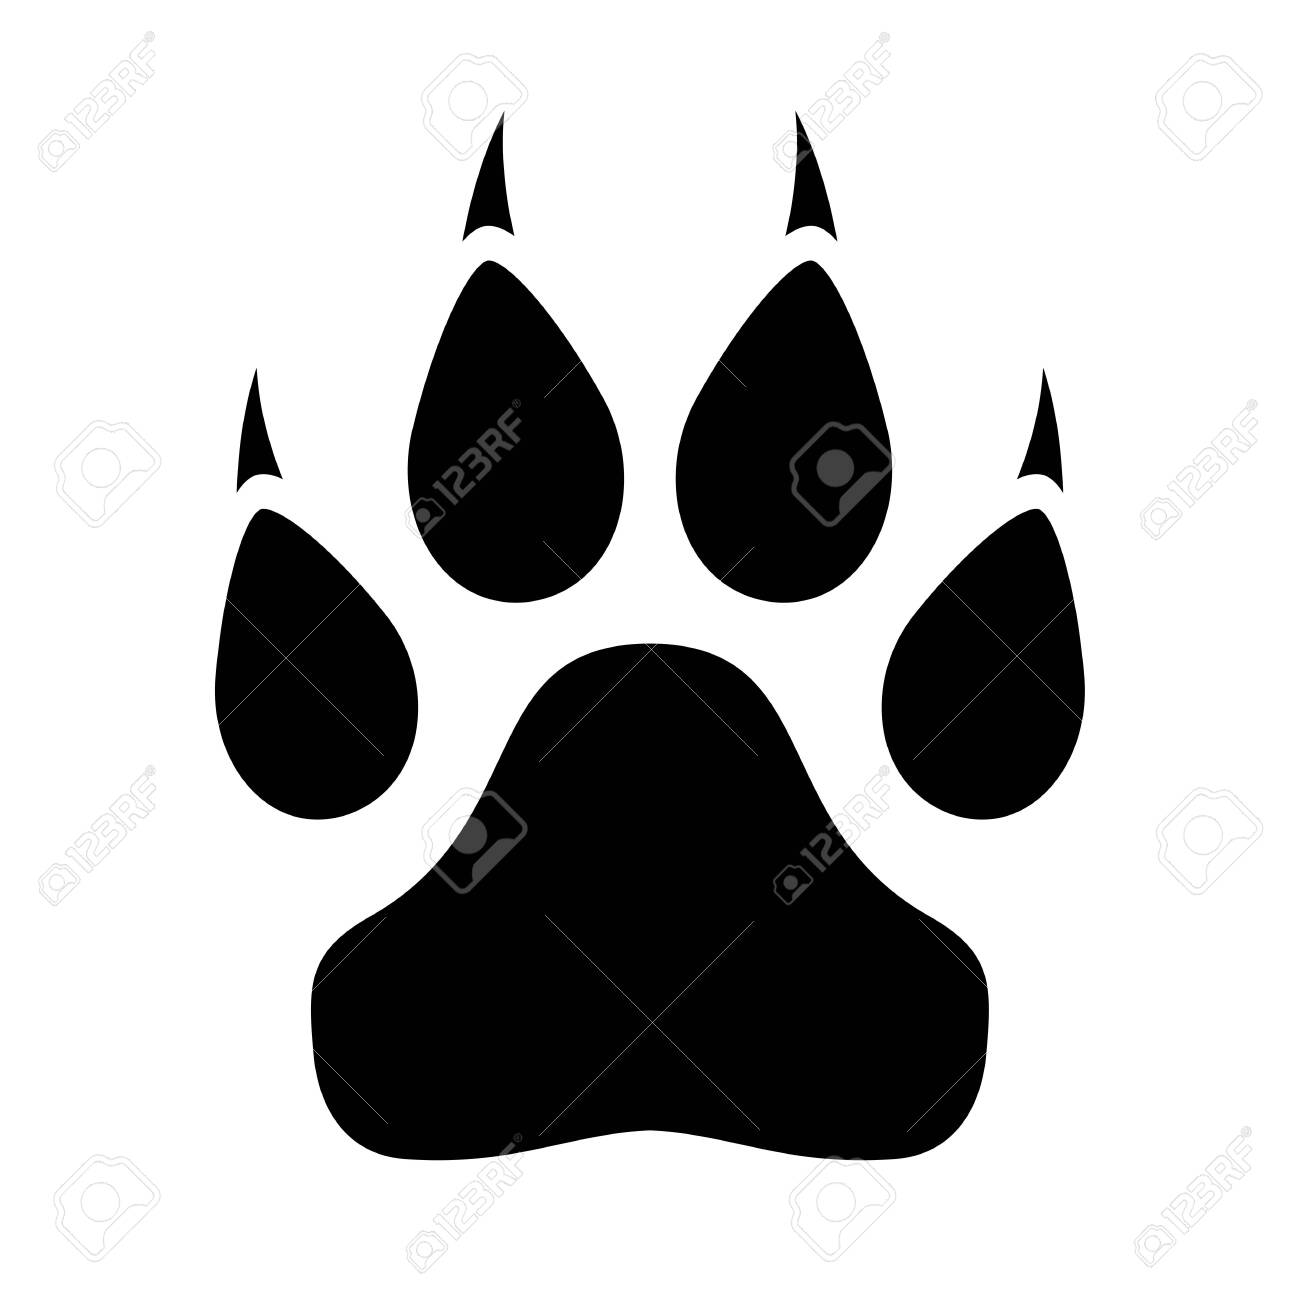 Animal paw icon with claws on white background - 126497528